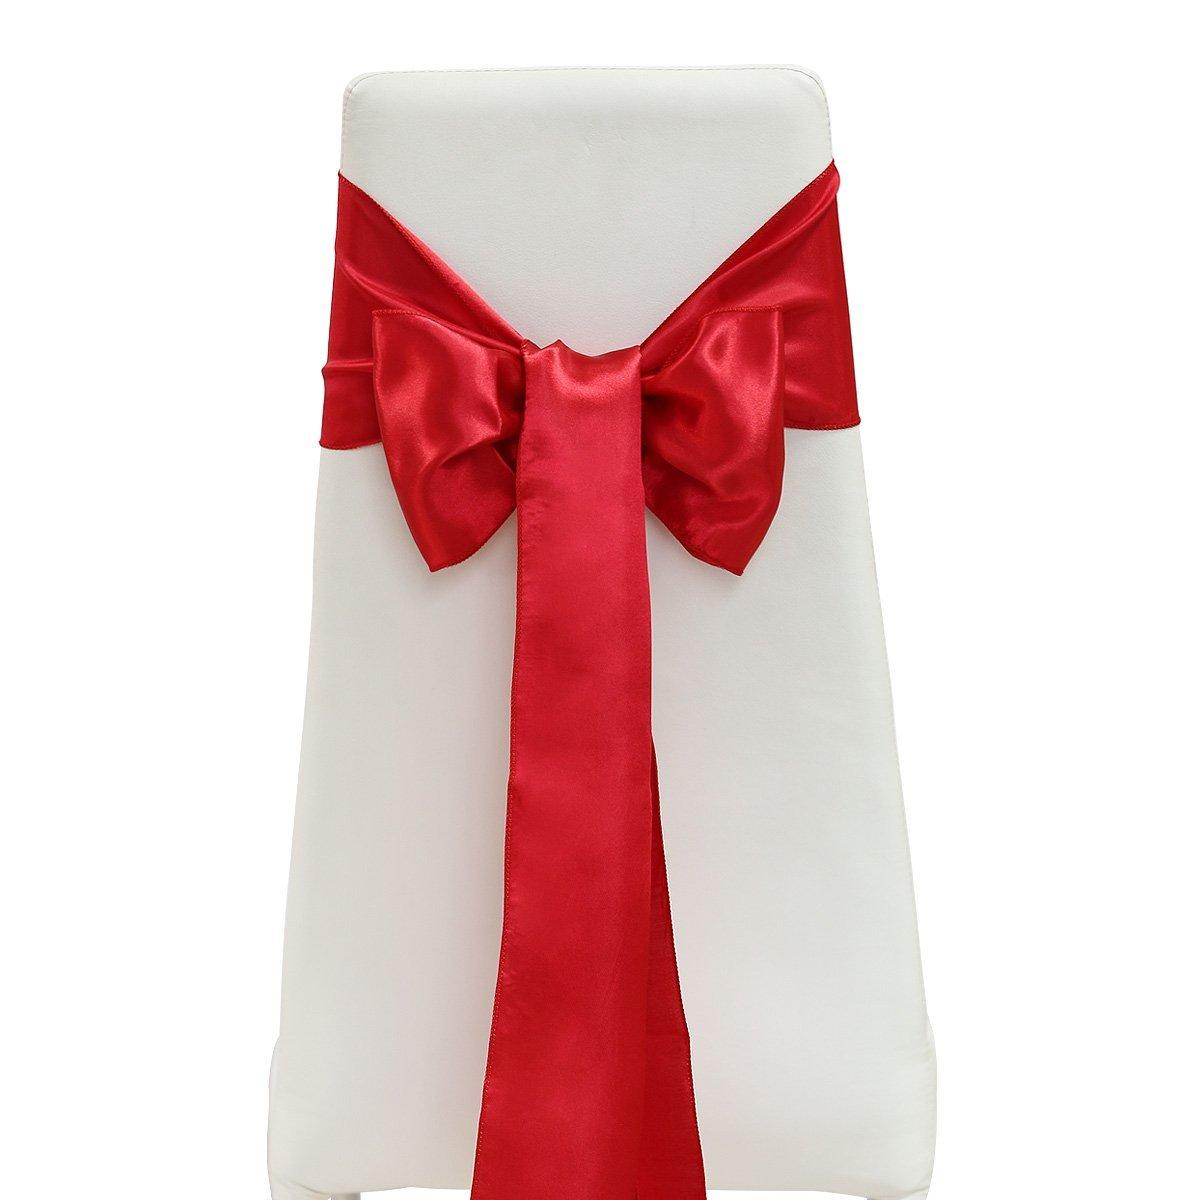 15x275cm Elegant Soft Satin Bowknot Chair Cover Sashes Bows Ribbons for Wedding Banquet Party Decoration Red